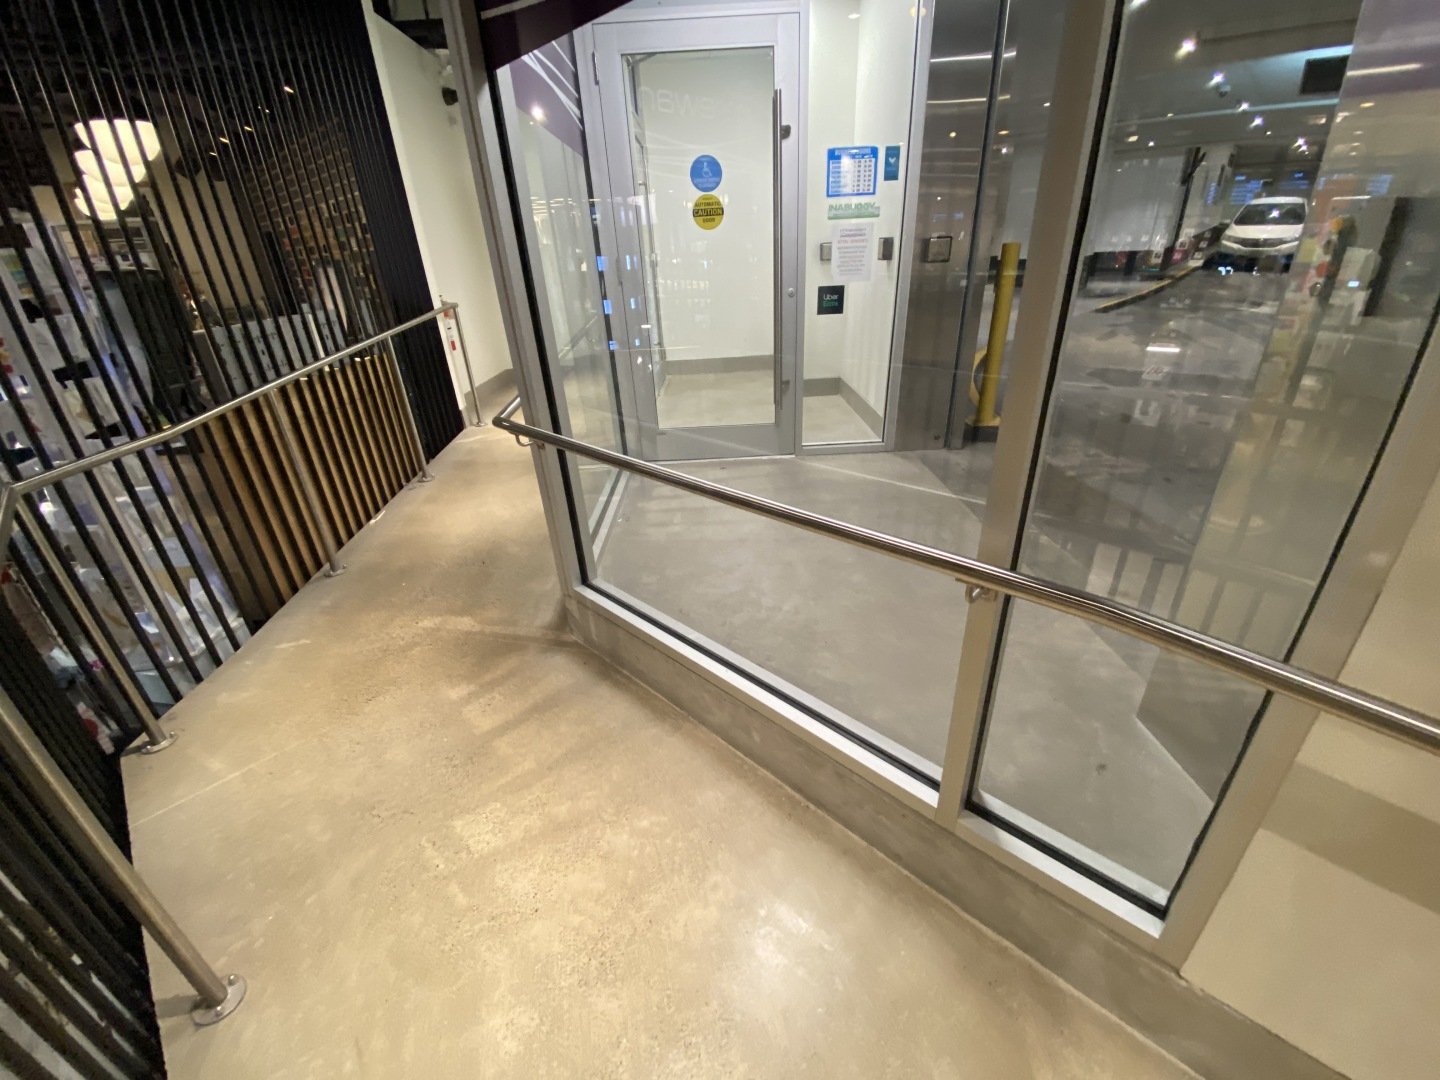 <div class='portfolio-image-caption'>McEwan Valet Entrance</div>